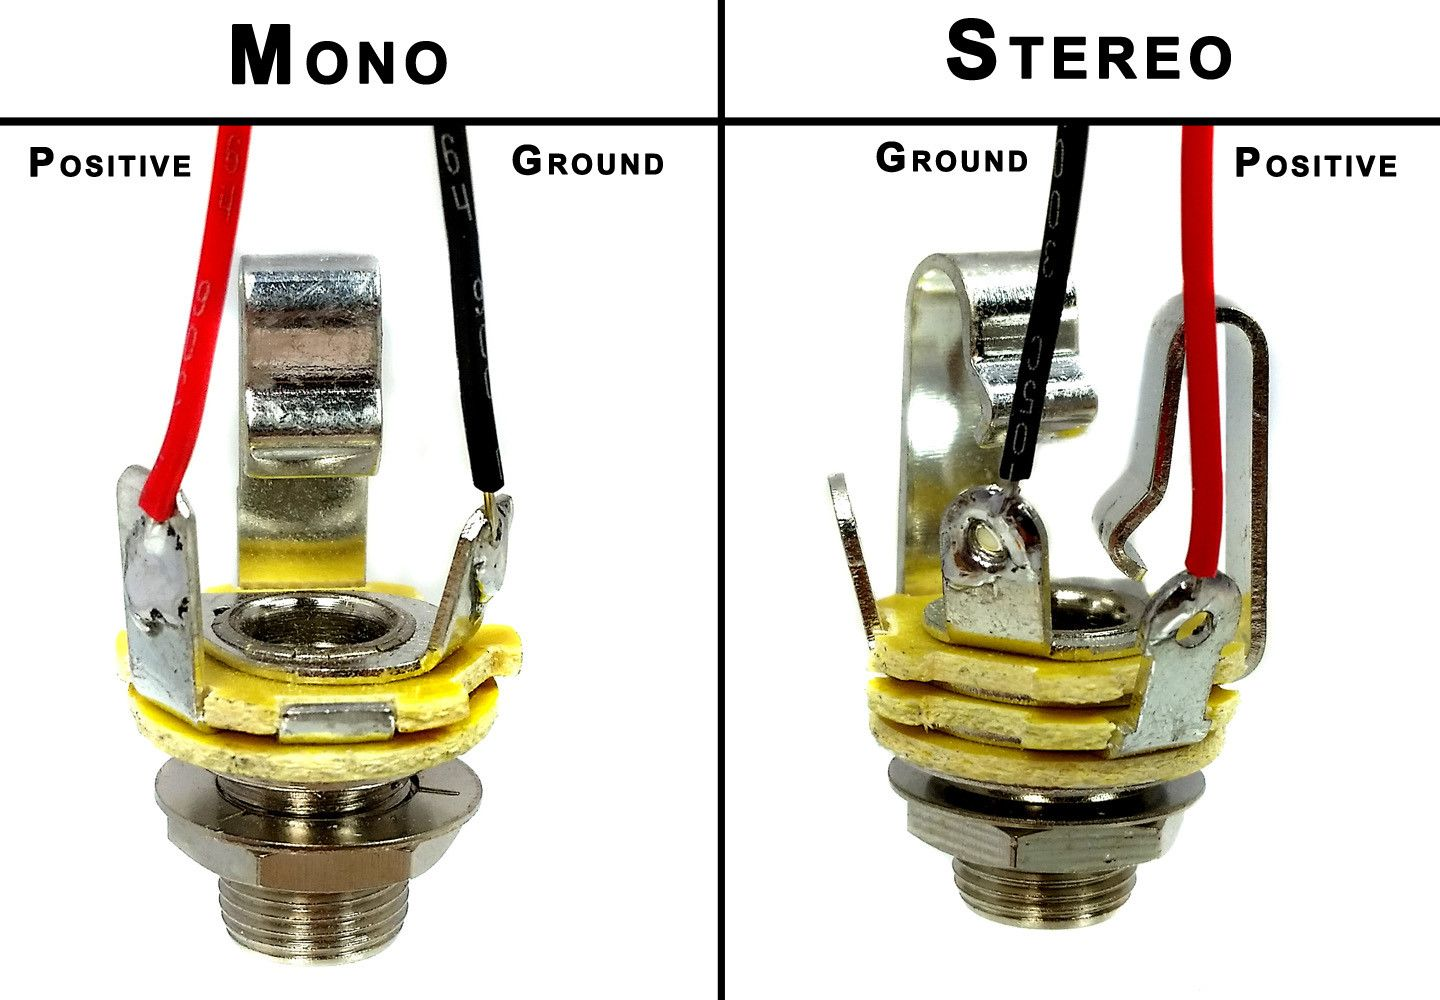 quot mono audio jack diagrams get image about wiring 1 4 quot mono audio jack